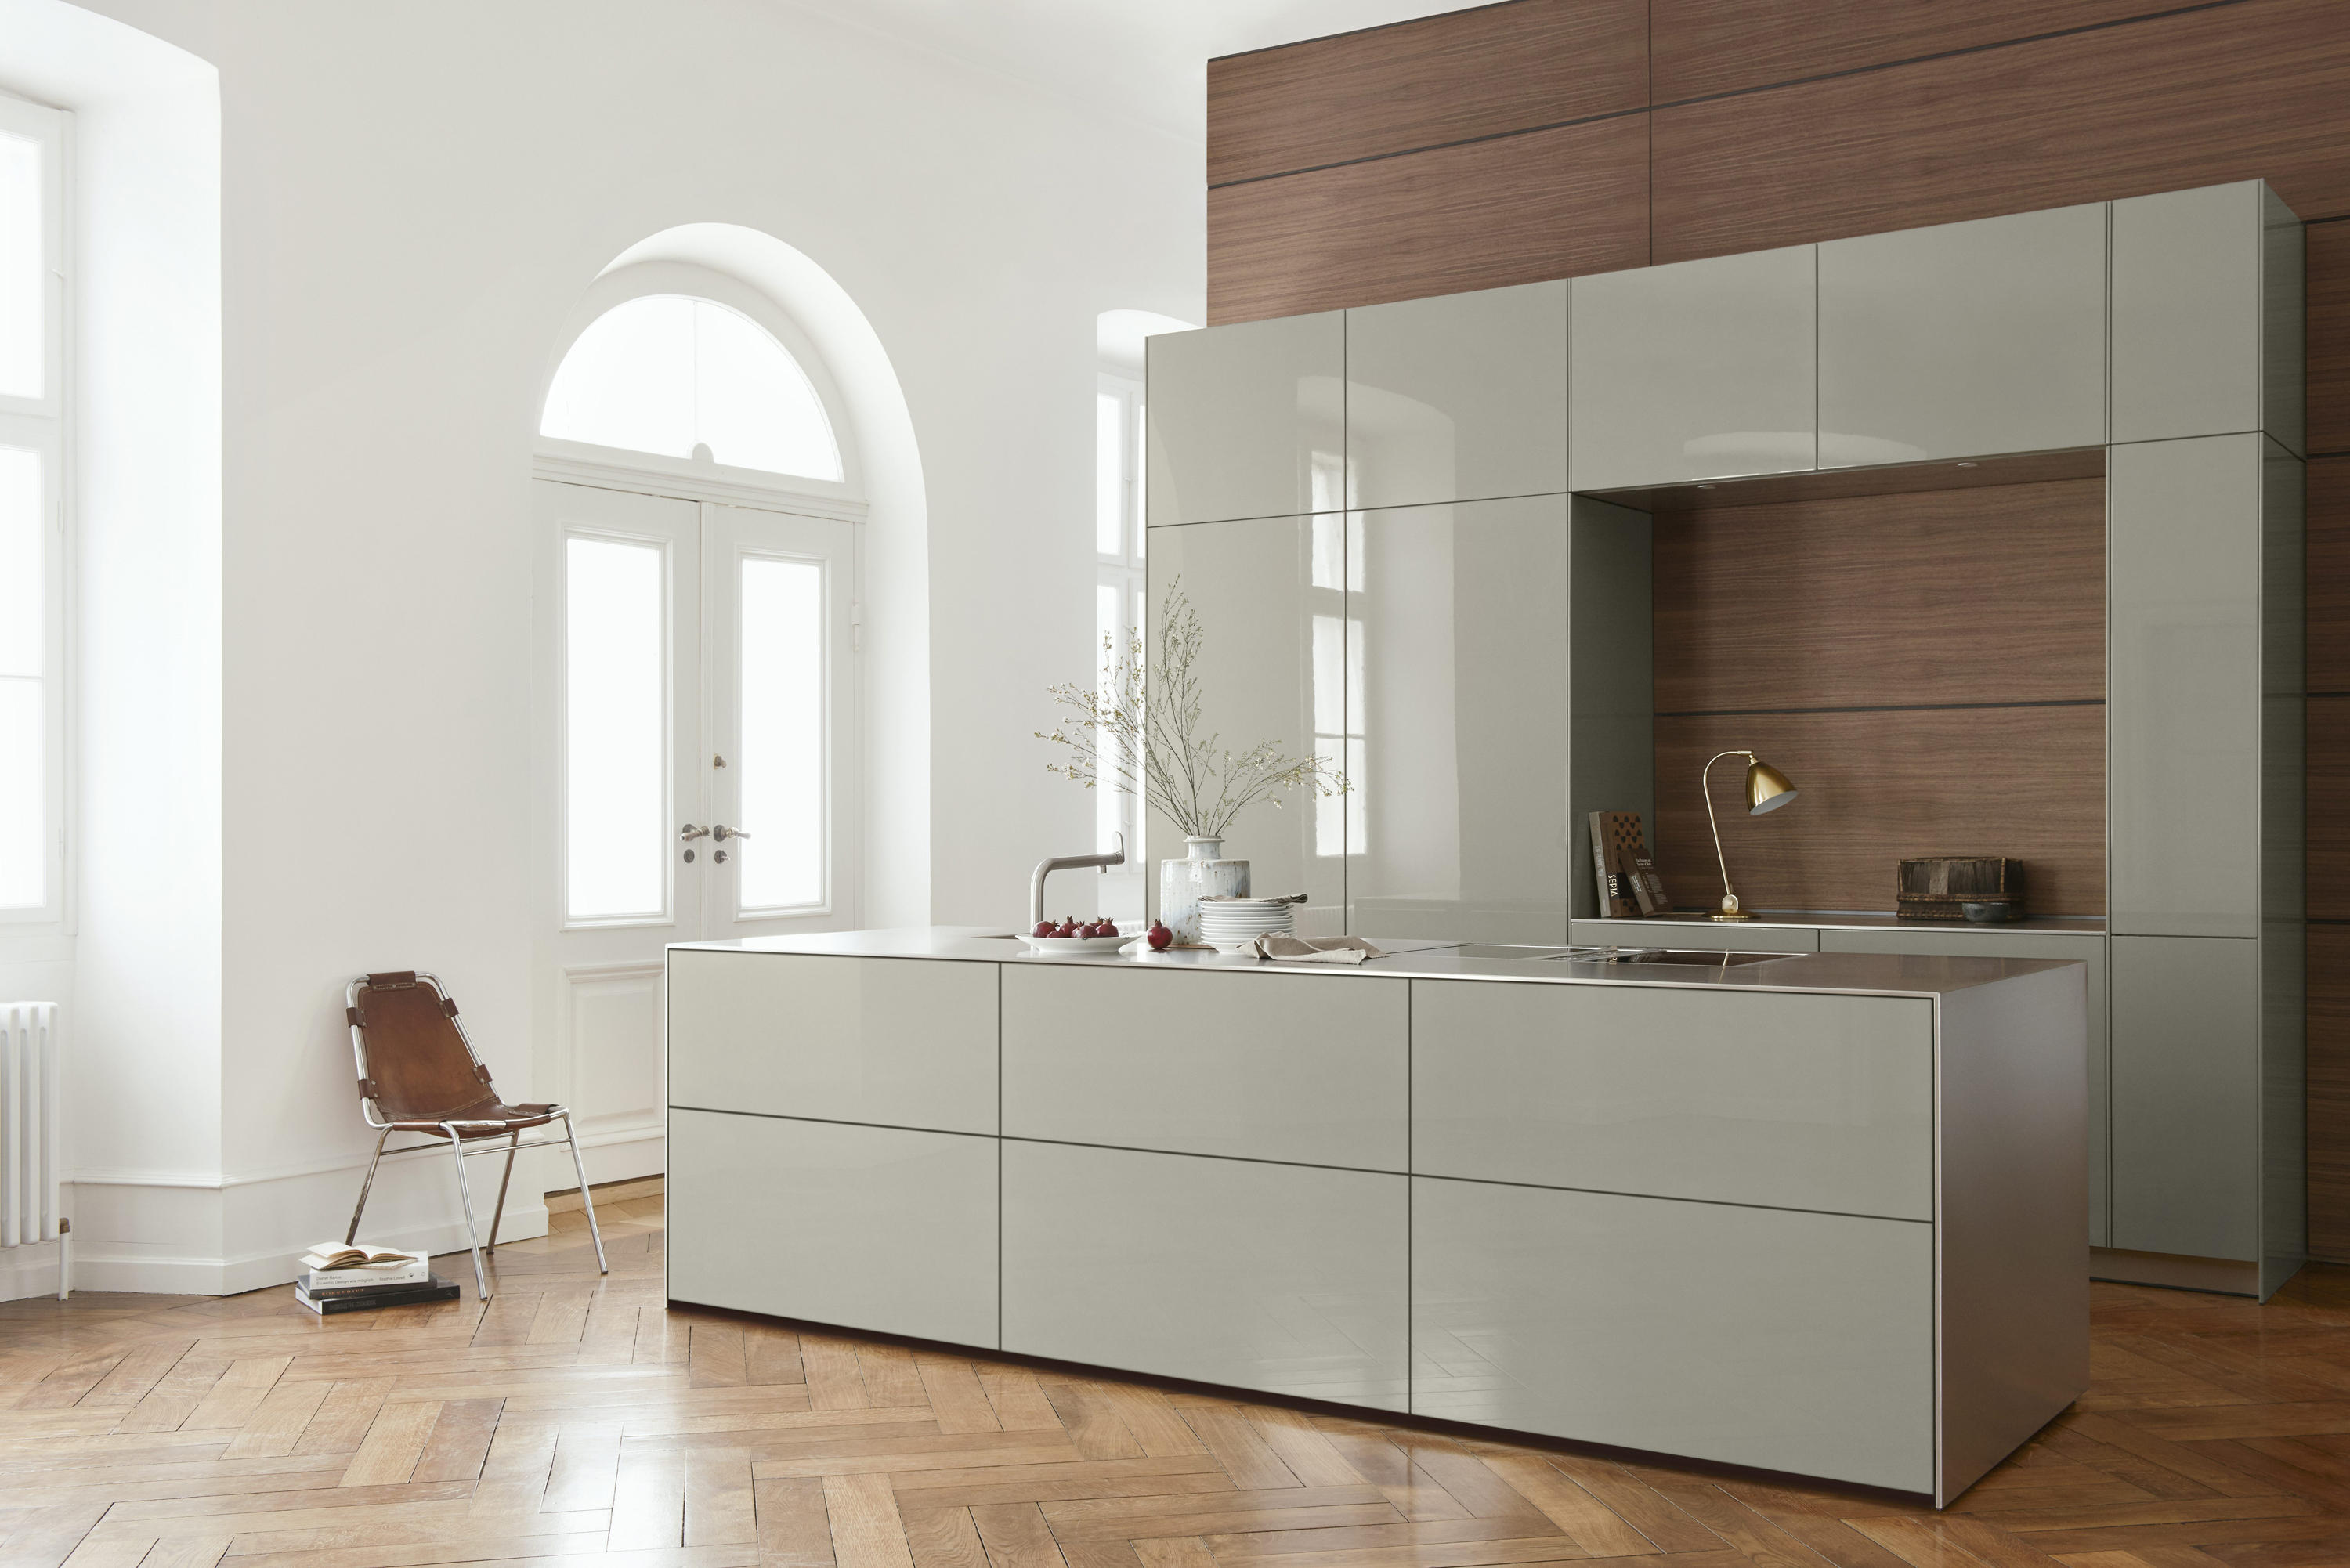 b3 monoblock in stainless steel fitted kitchens from. Black Bedroom Furniture Sets. Home Design Ideas